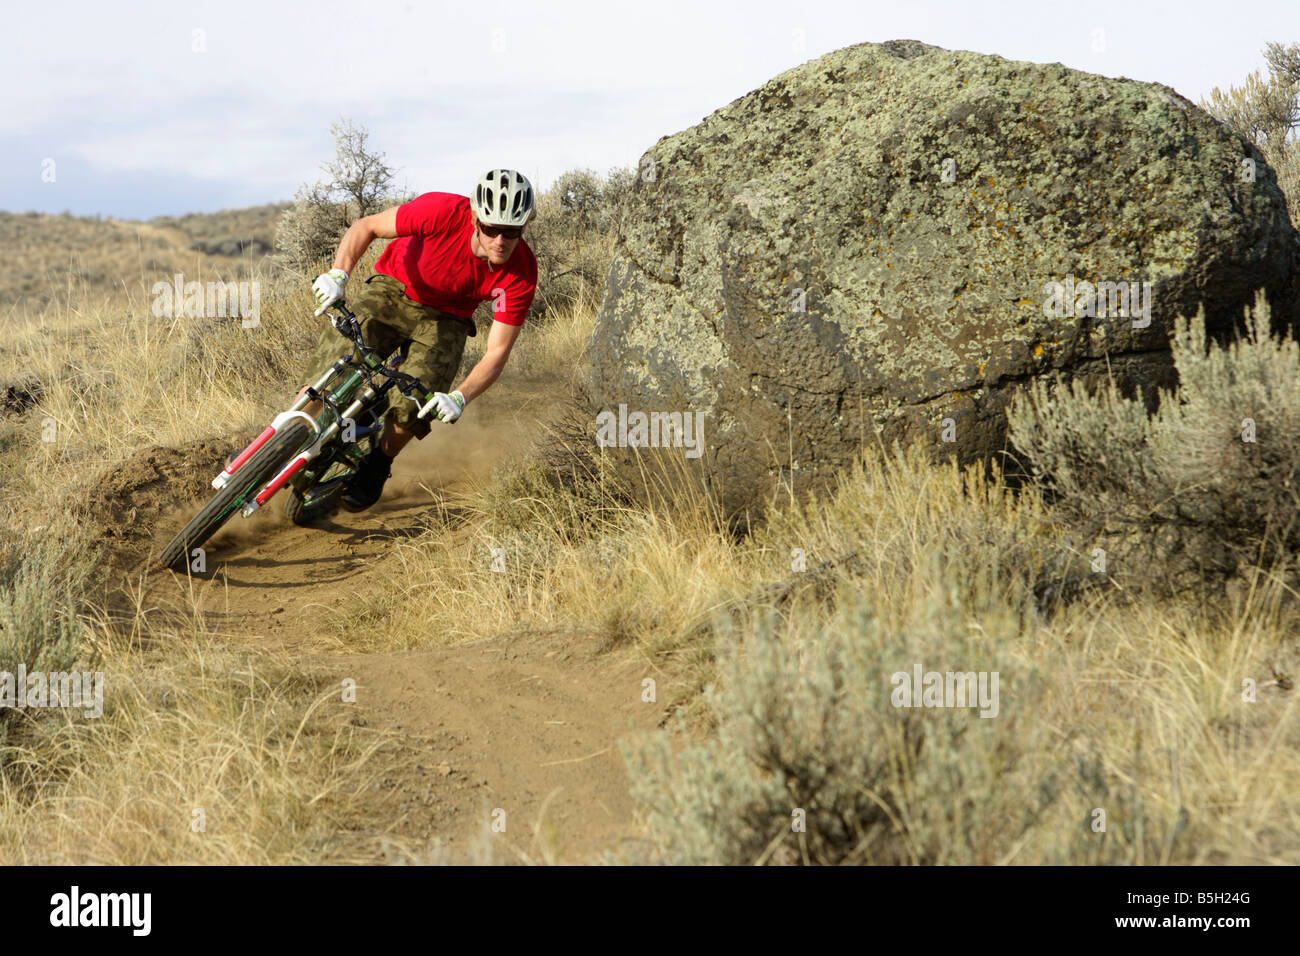 Downhill cyclist driving a turn - Stock Image